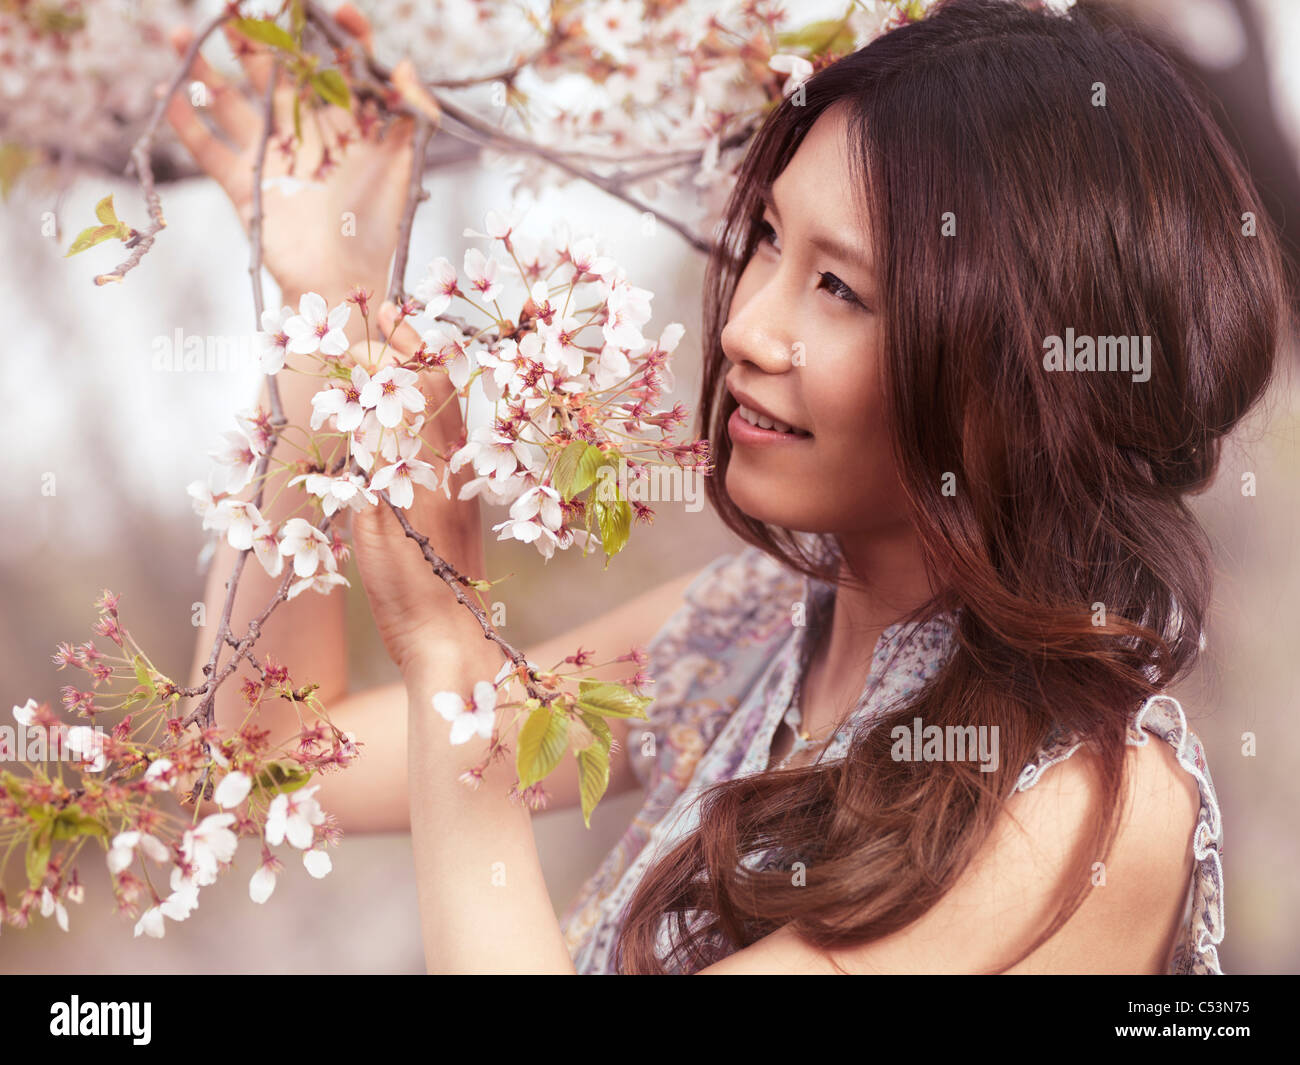 Portrait of a beautiful young smiling Asian woman standing at a blooming cherry tree in a park - Stock Image